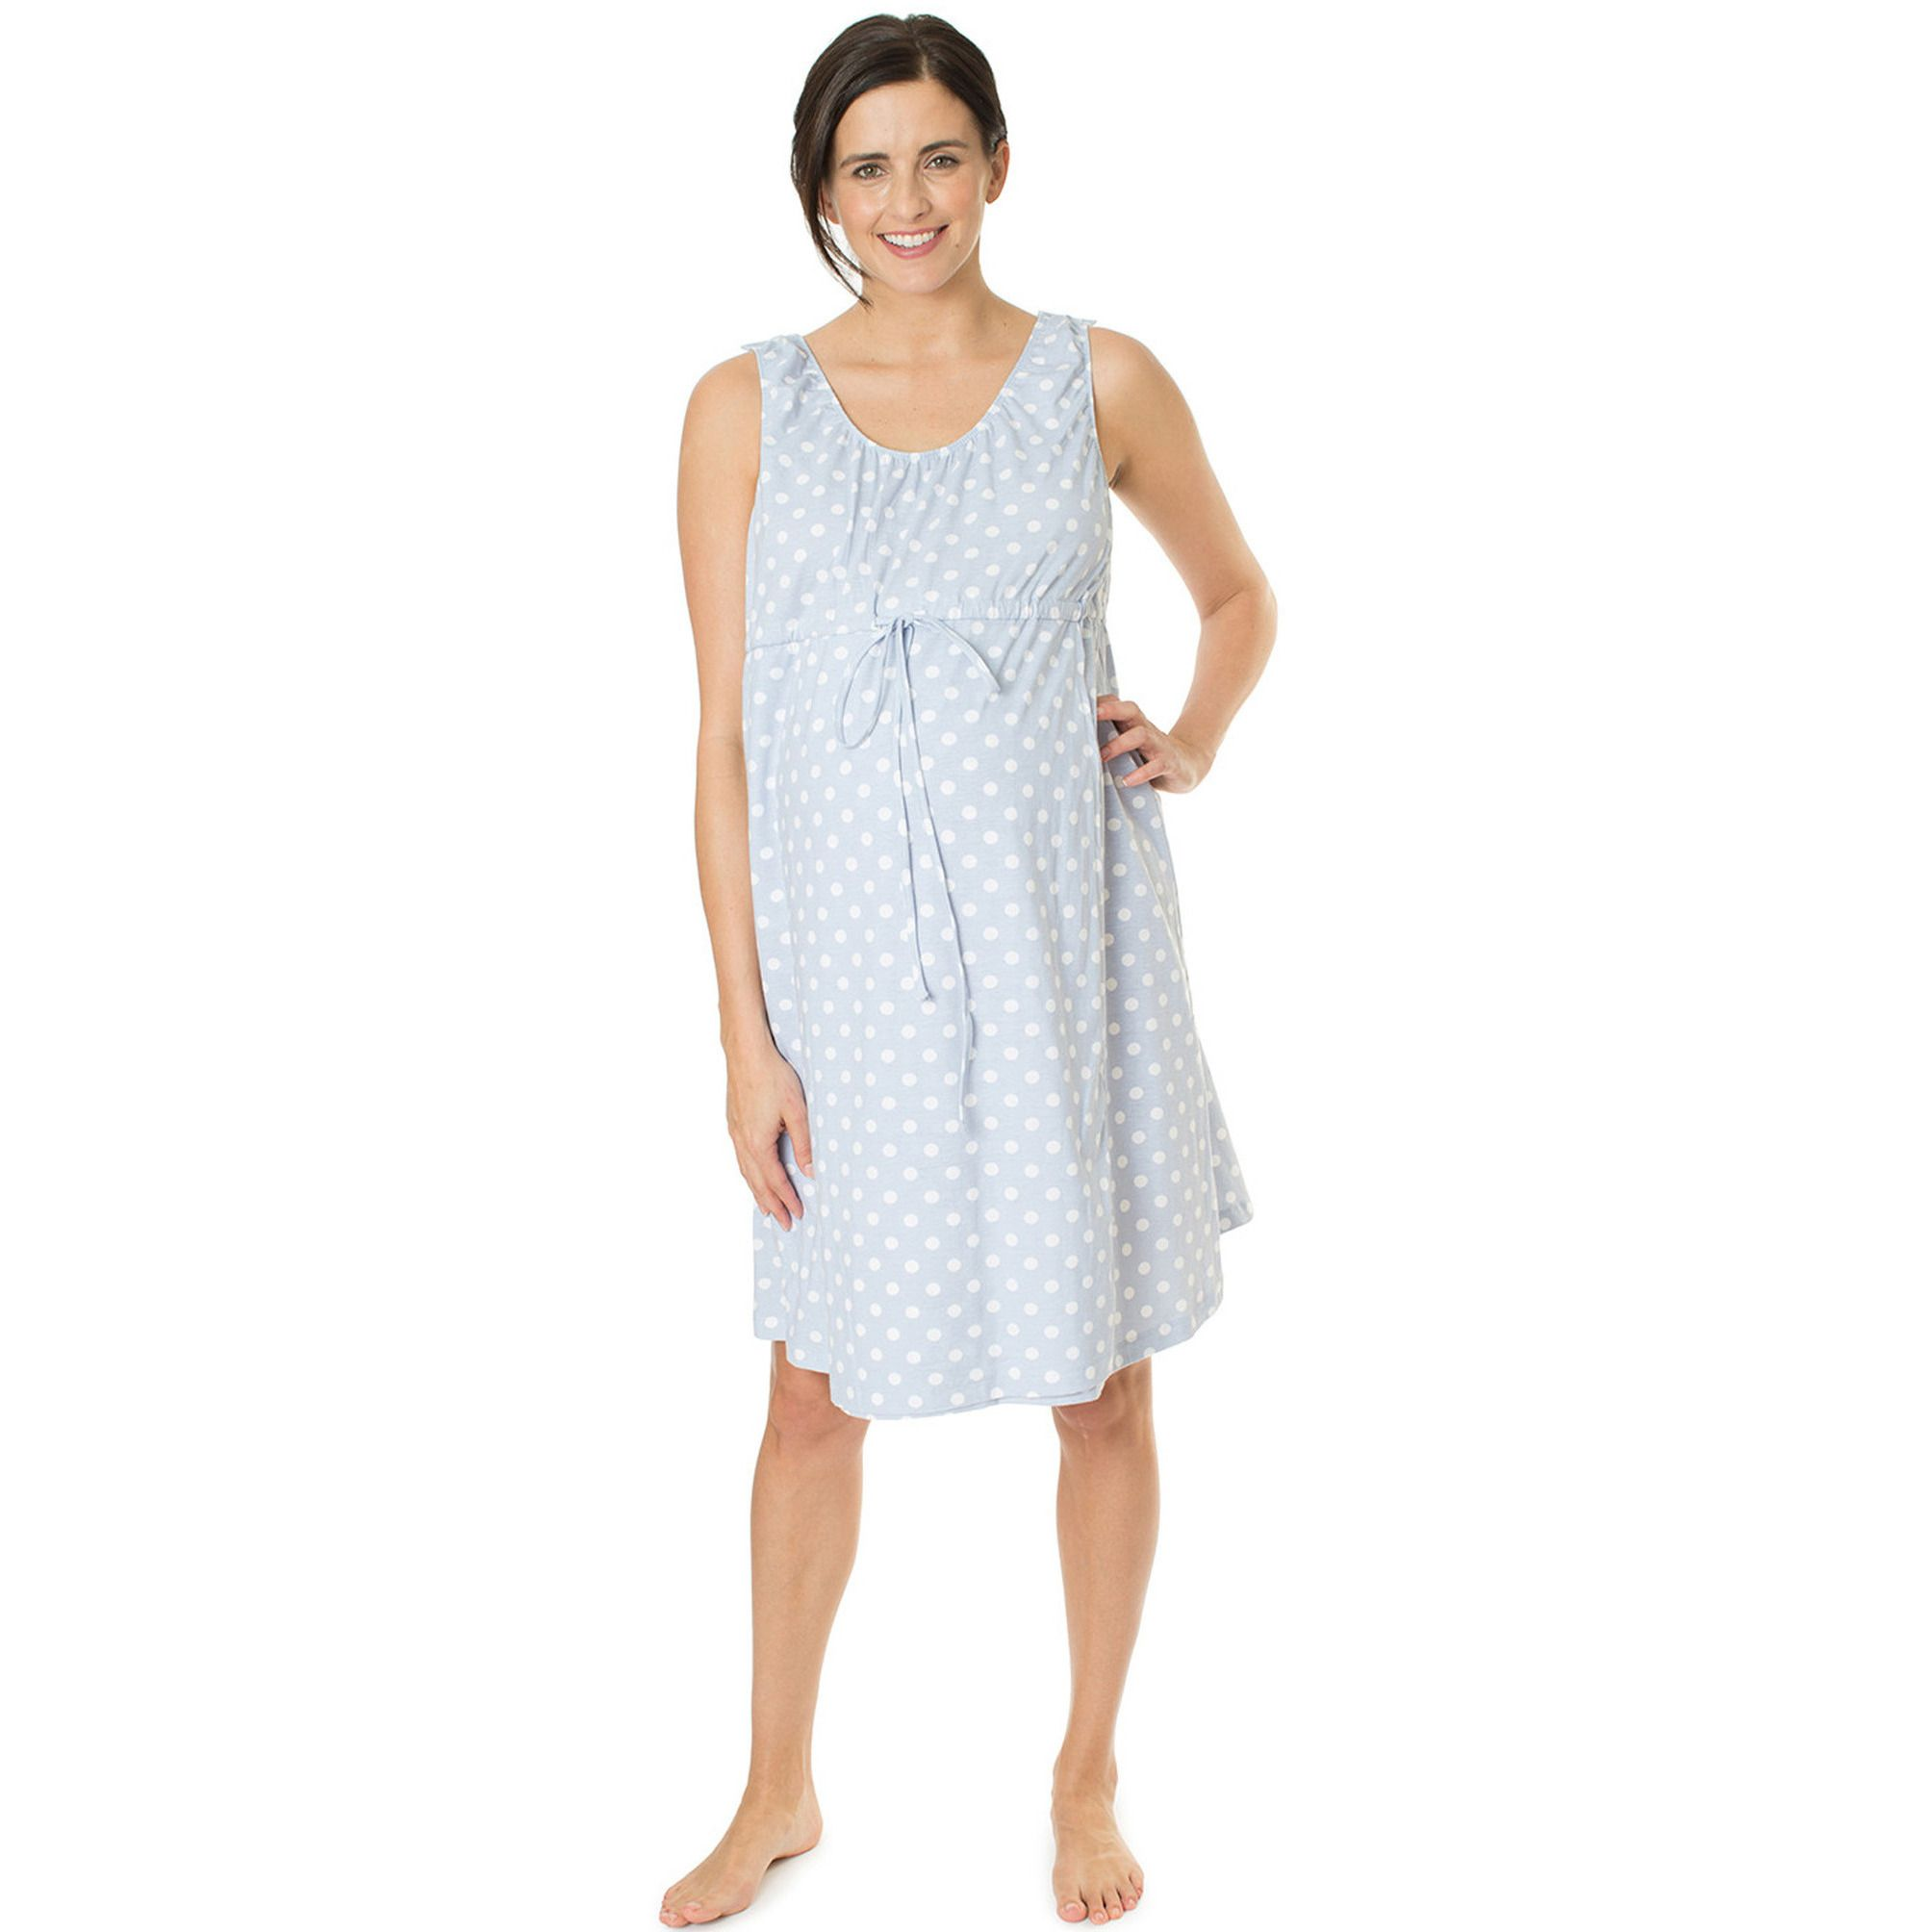 Nicole 3 in 1 Labor / Delivery / Nursing Gown | Nursing gown and Labour